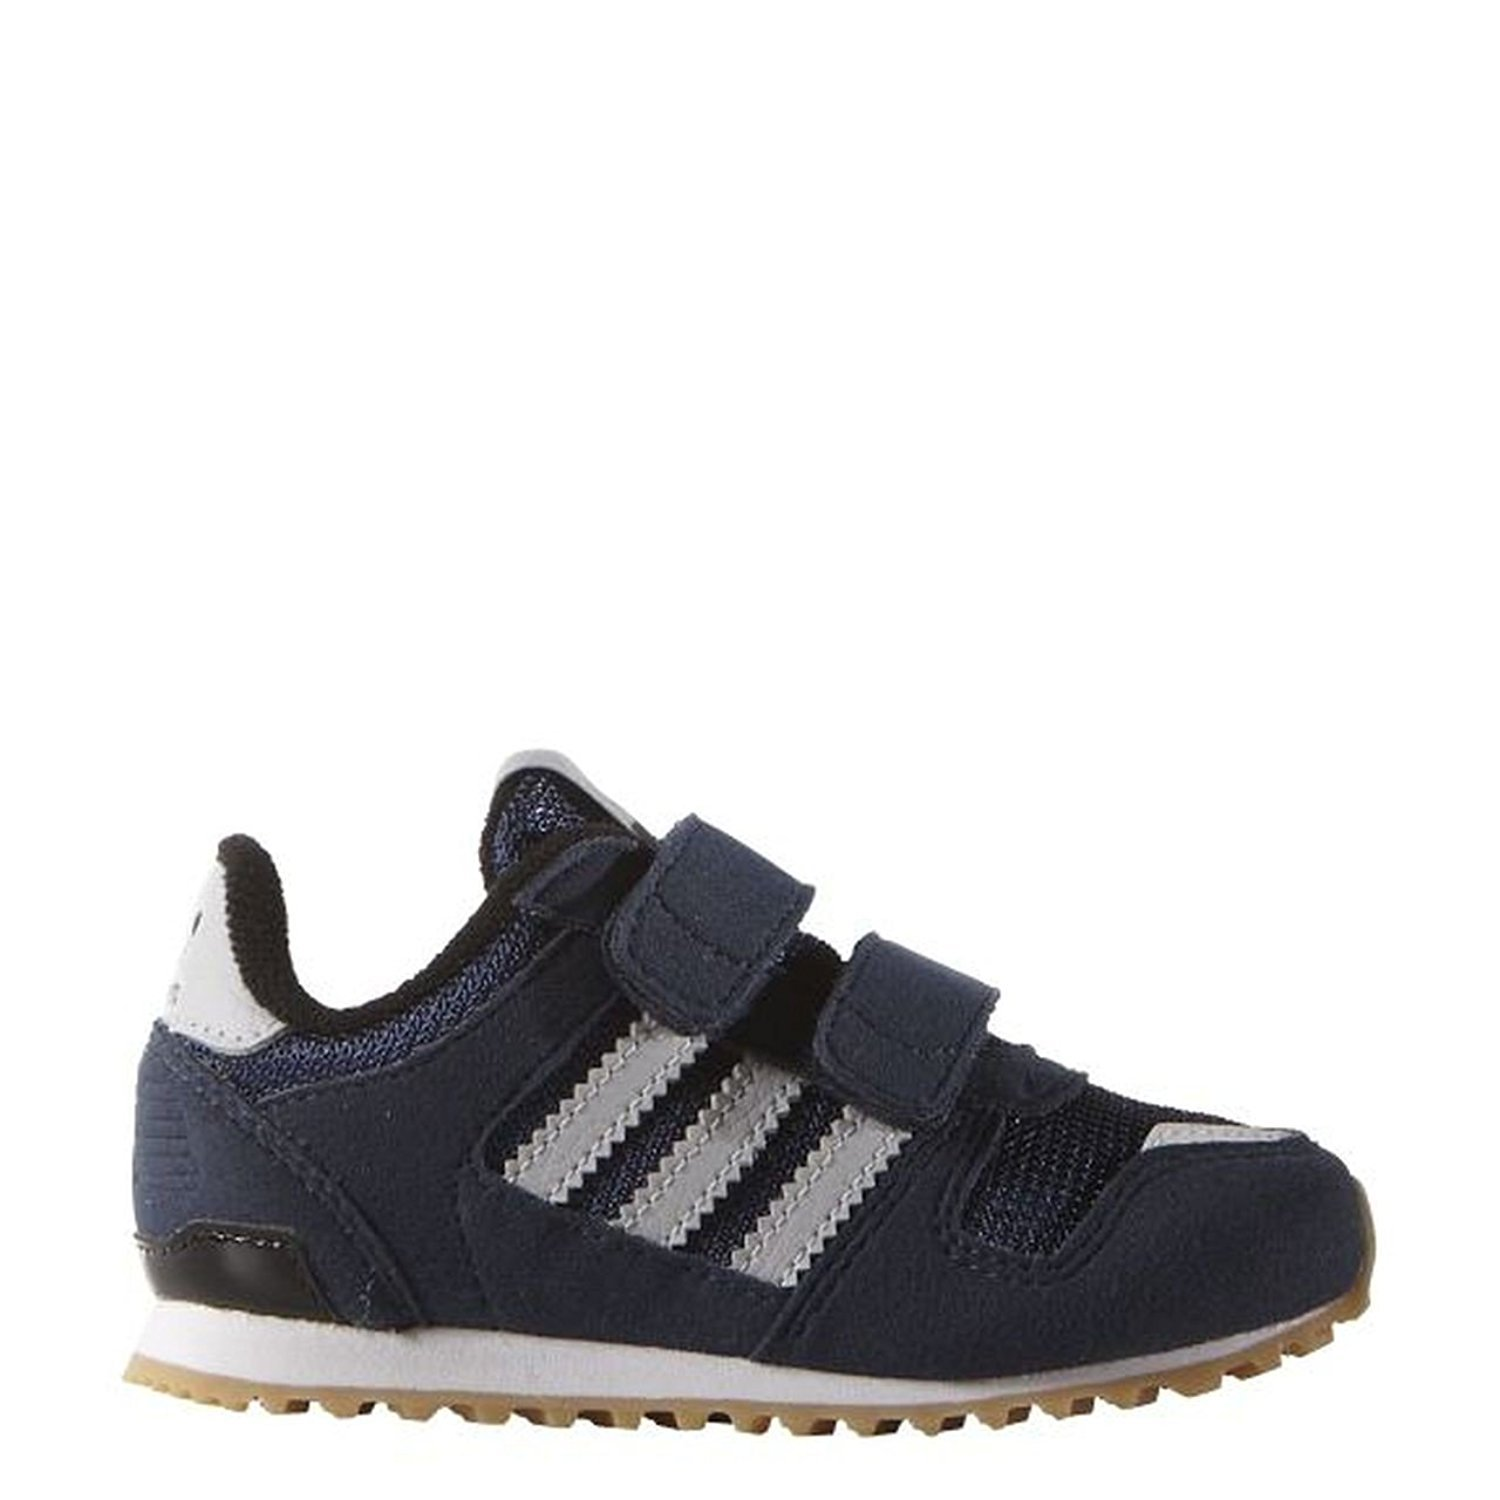 64bf499263b15 Details about ADIDAS ORIGINALS ZX 700 CF I BOYS KIDS CHILD SNEAKERS S78742